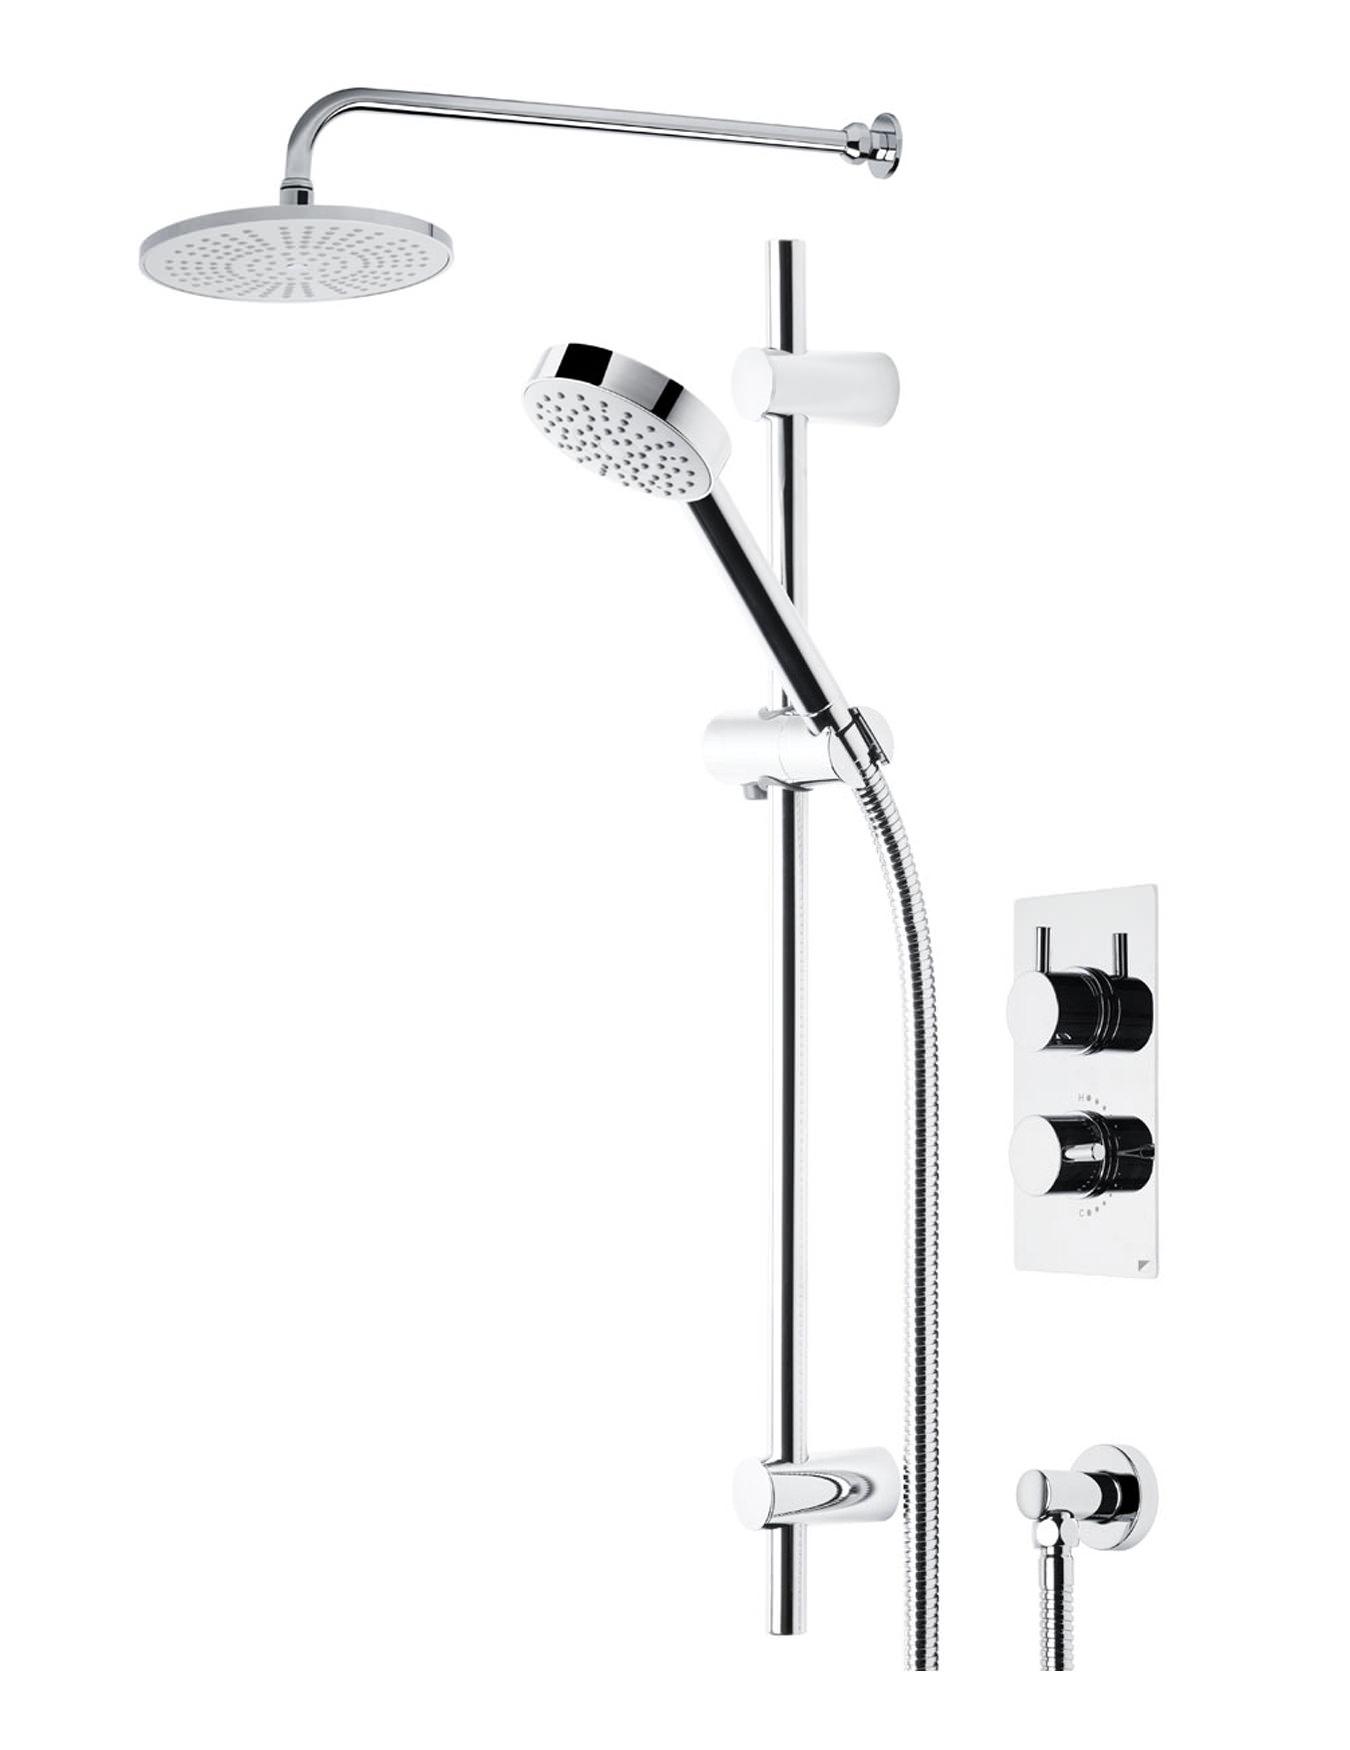 Roper Rhodes Event Shower System 1 Chrome | SVSET01